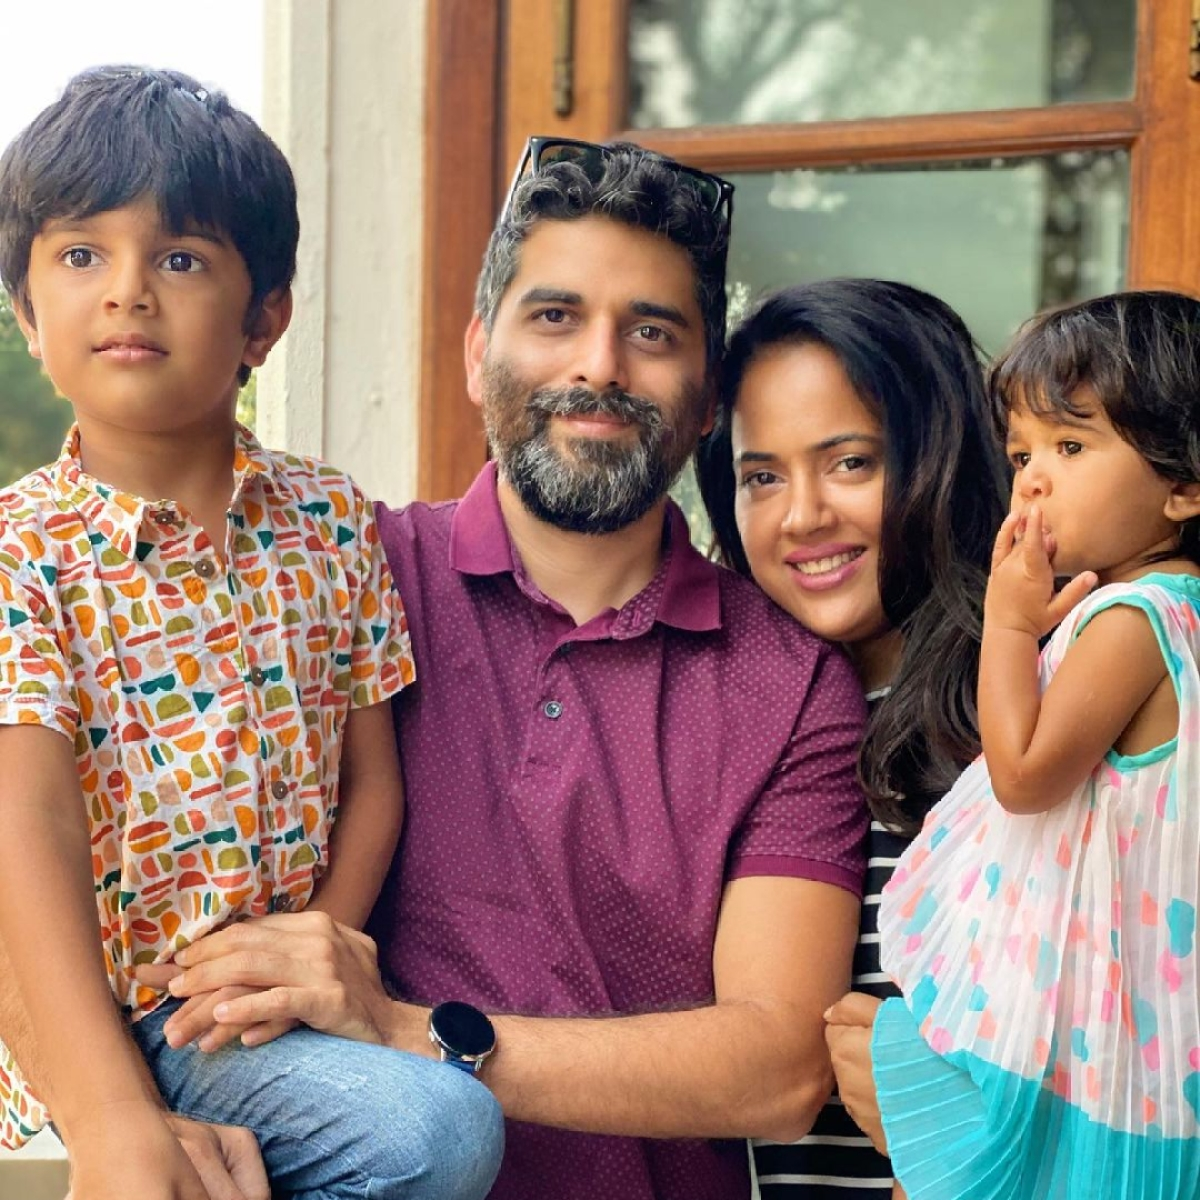 Sameera Reddy's kids Nyra, 2, and Hans, 6, test positive for COVID-19, actress shares health update